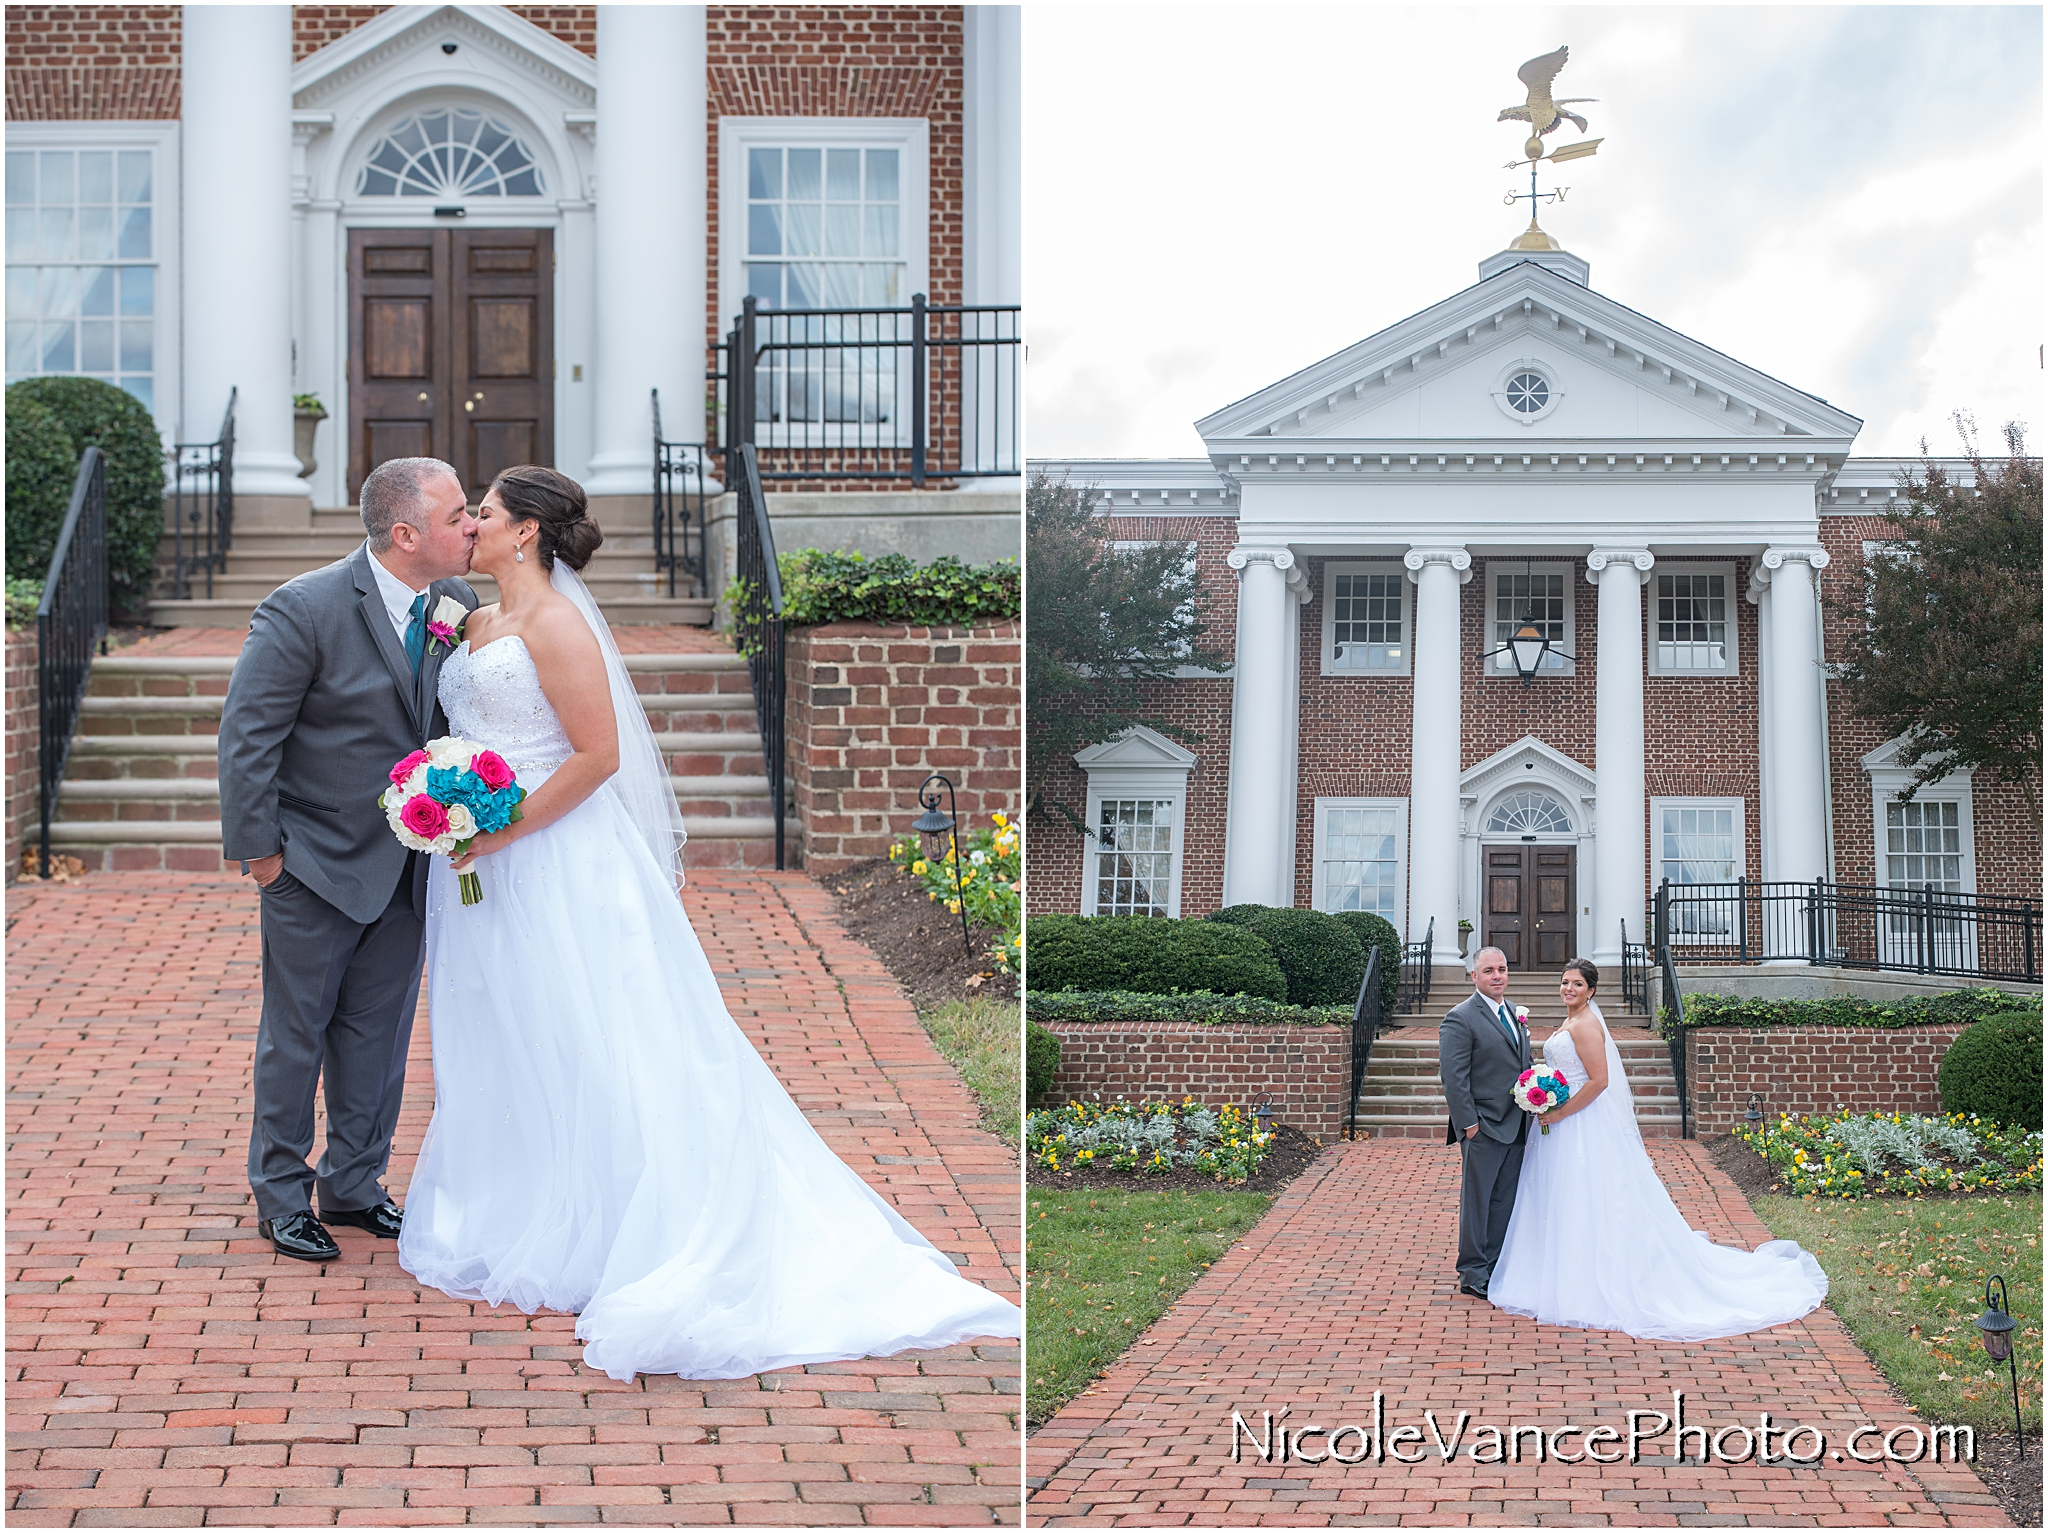 Bride and groom portraits on the steps at Virginia Crossings.